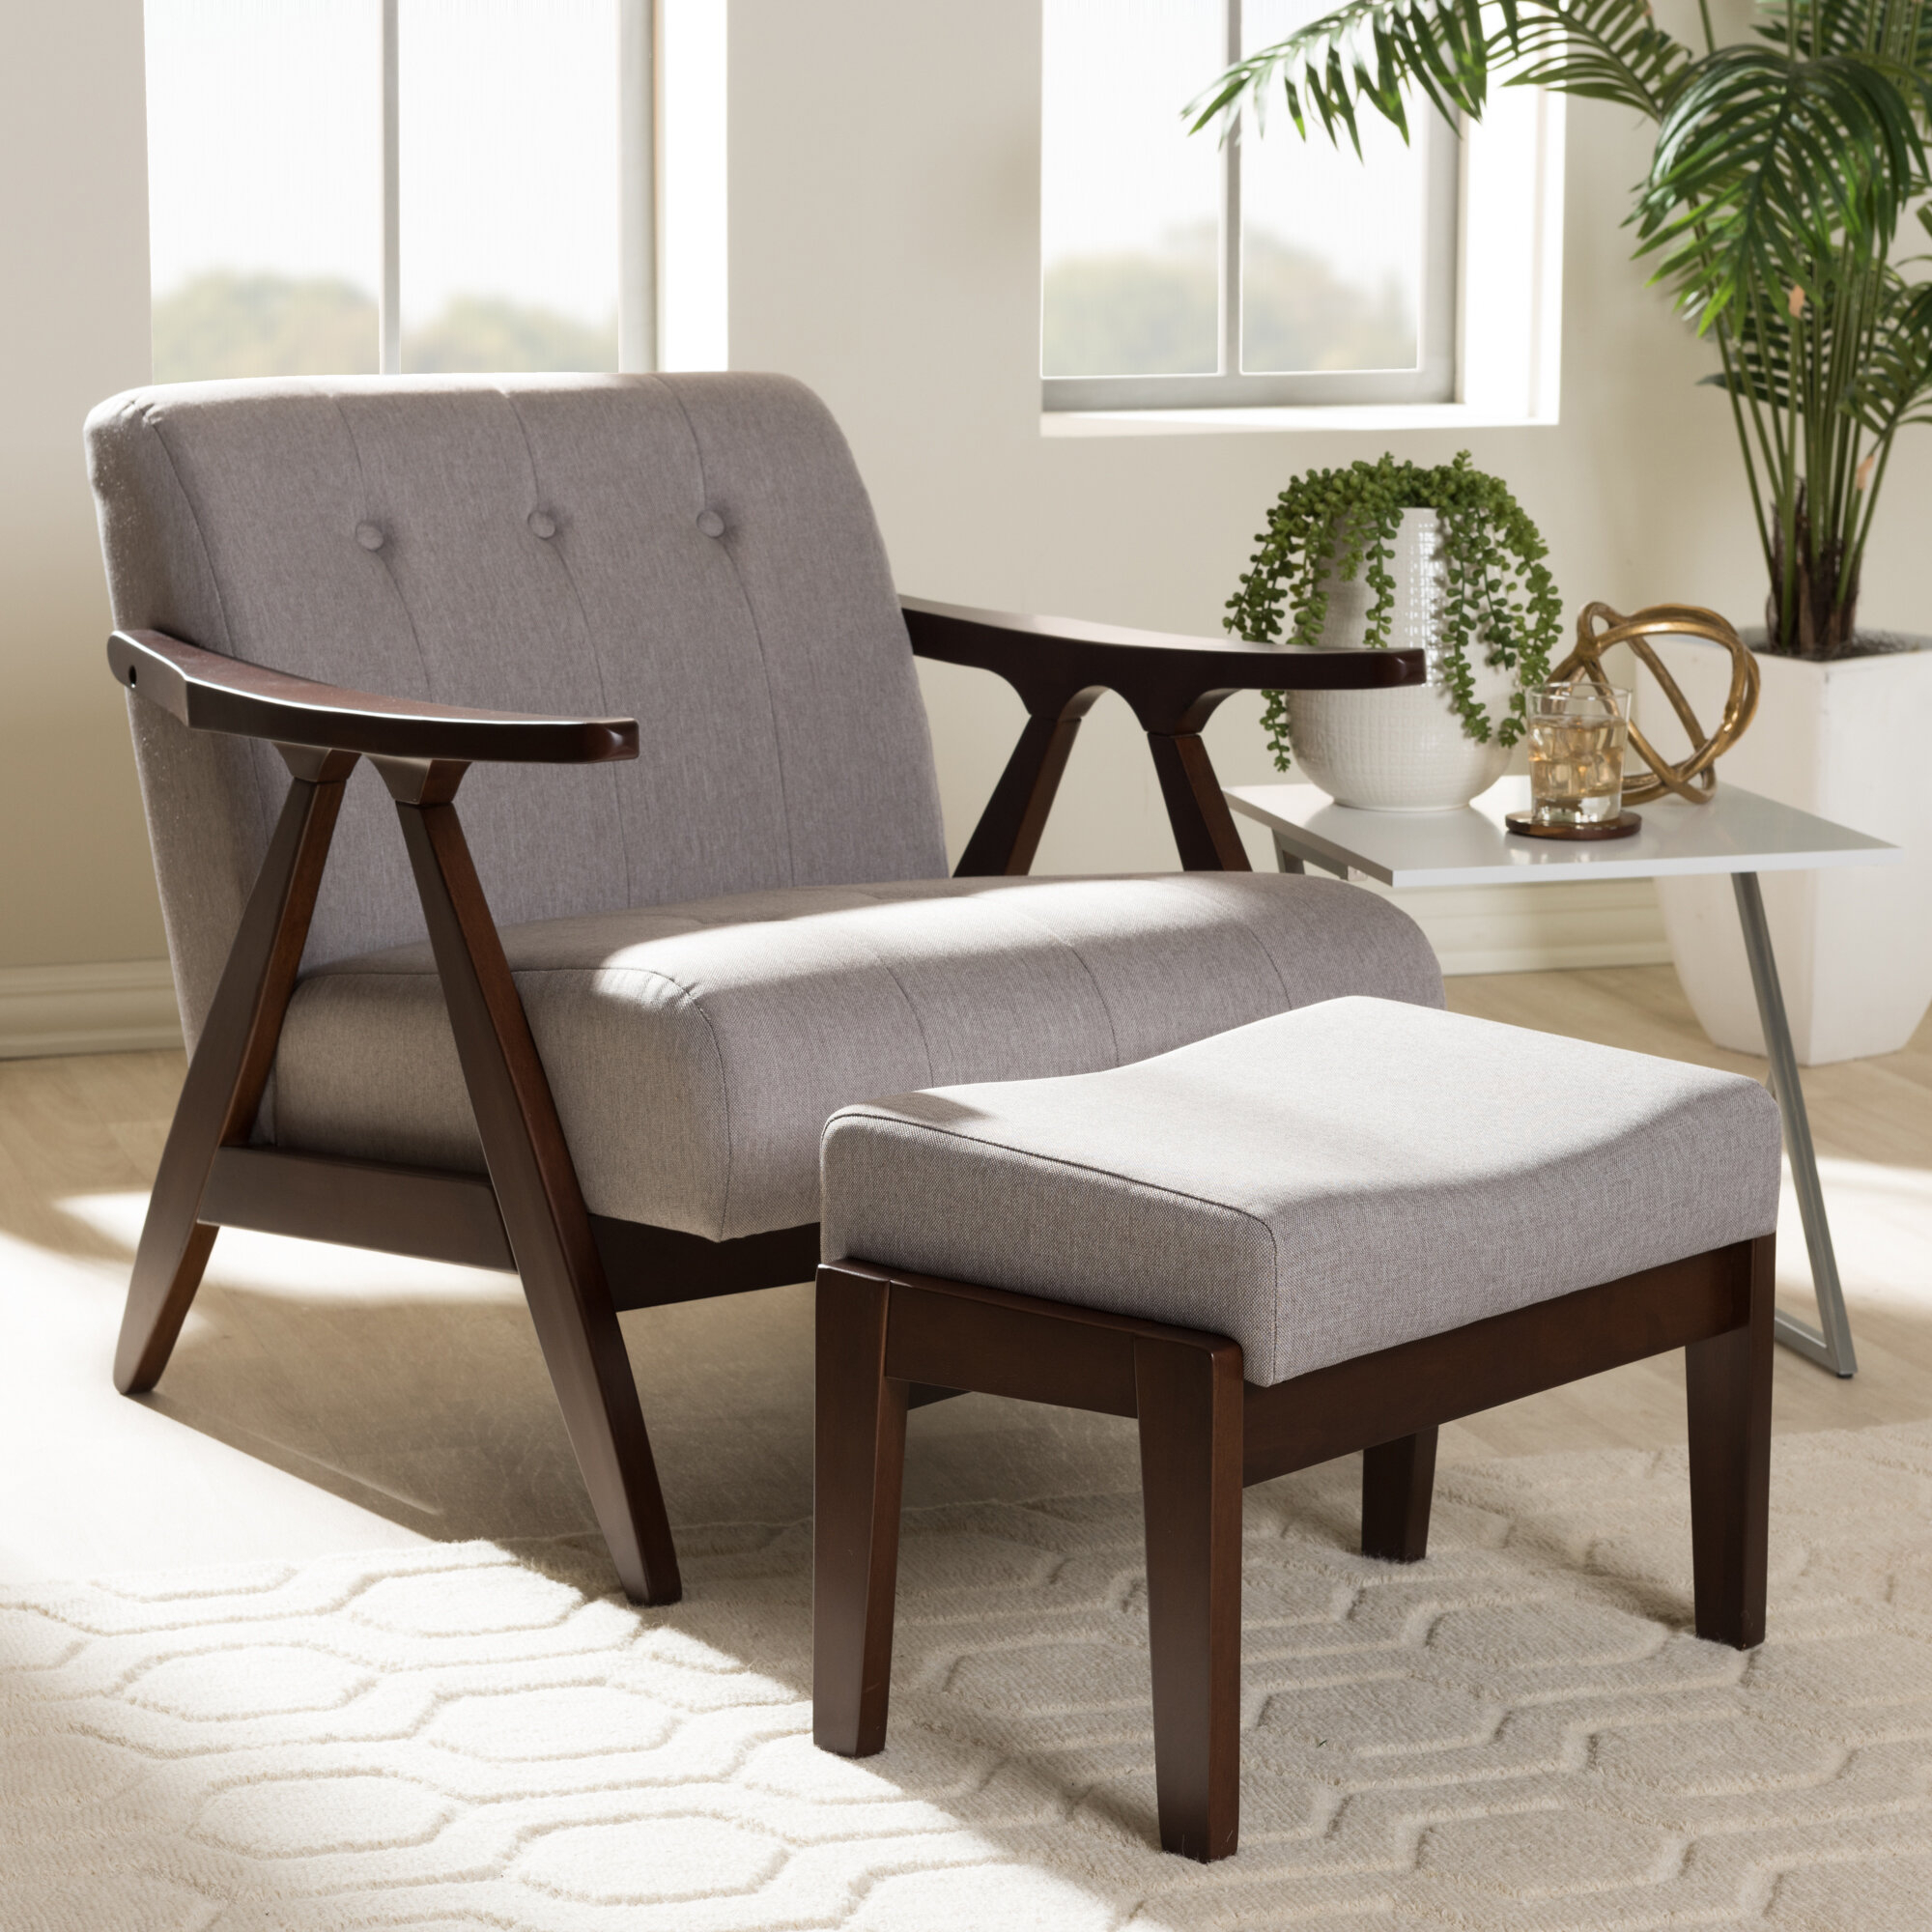 Enrico Lounge Chair And Ottoman With Regard To Artemi Barrel Chair And Ottoman Sets (View 8 of 15)